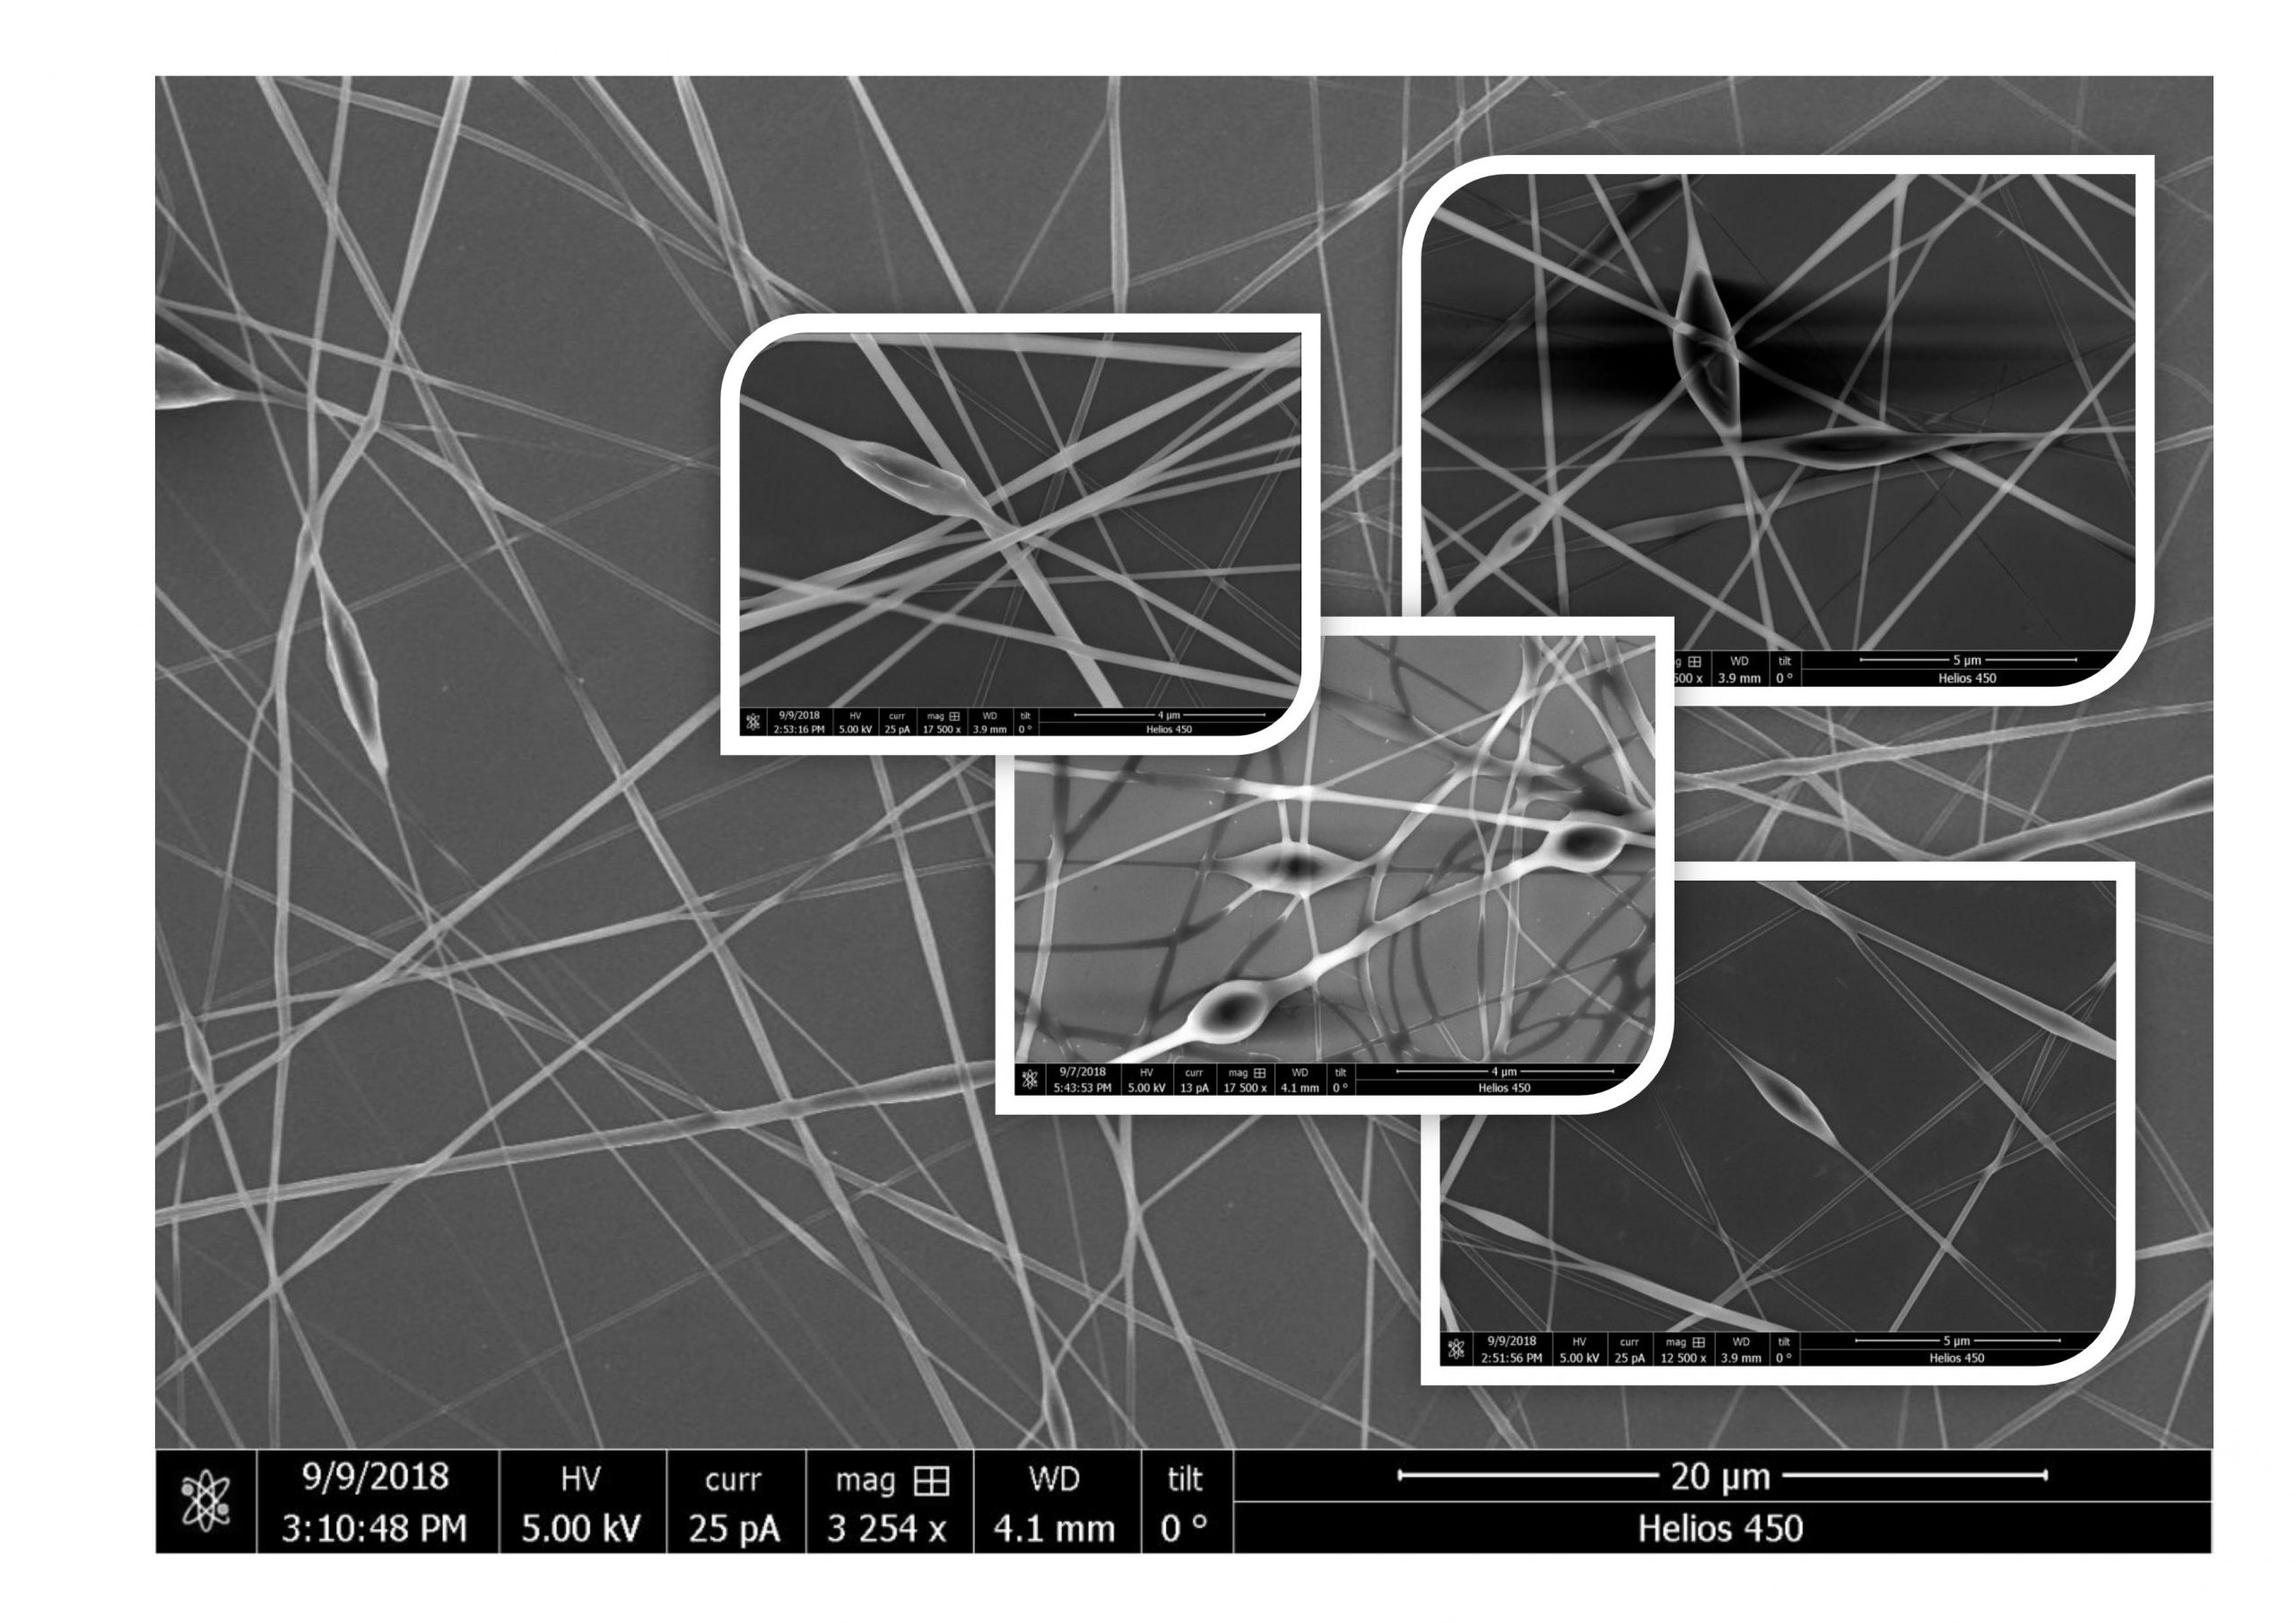 3- SEM images of PVA nanofibers with Graphene nanoparticles